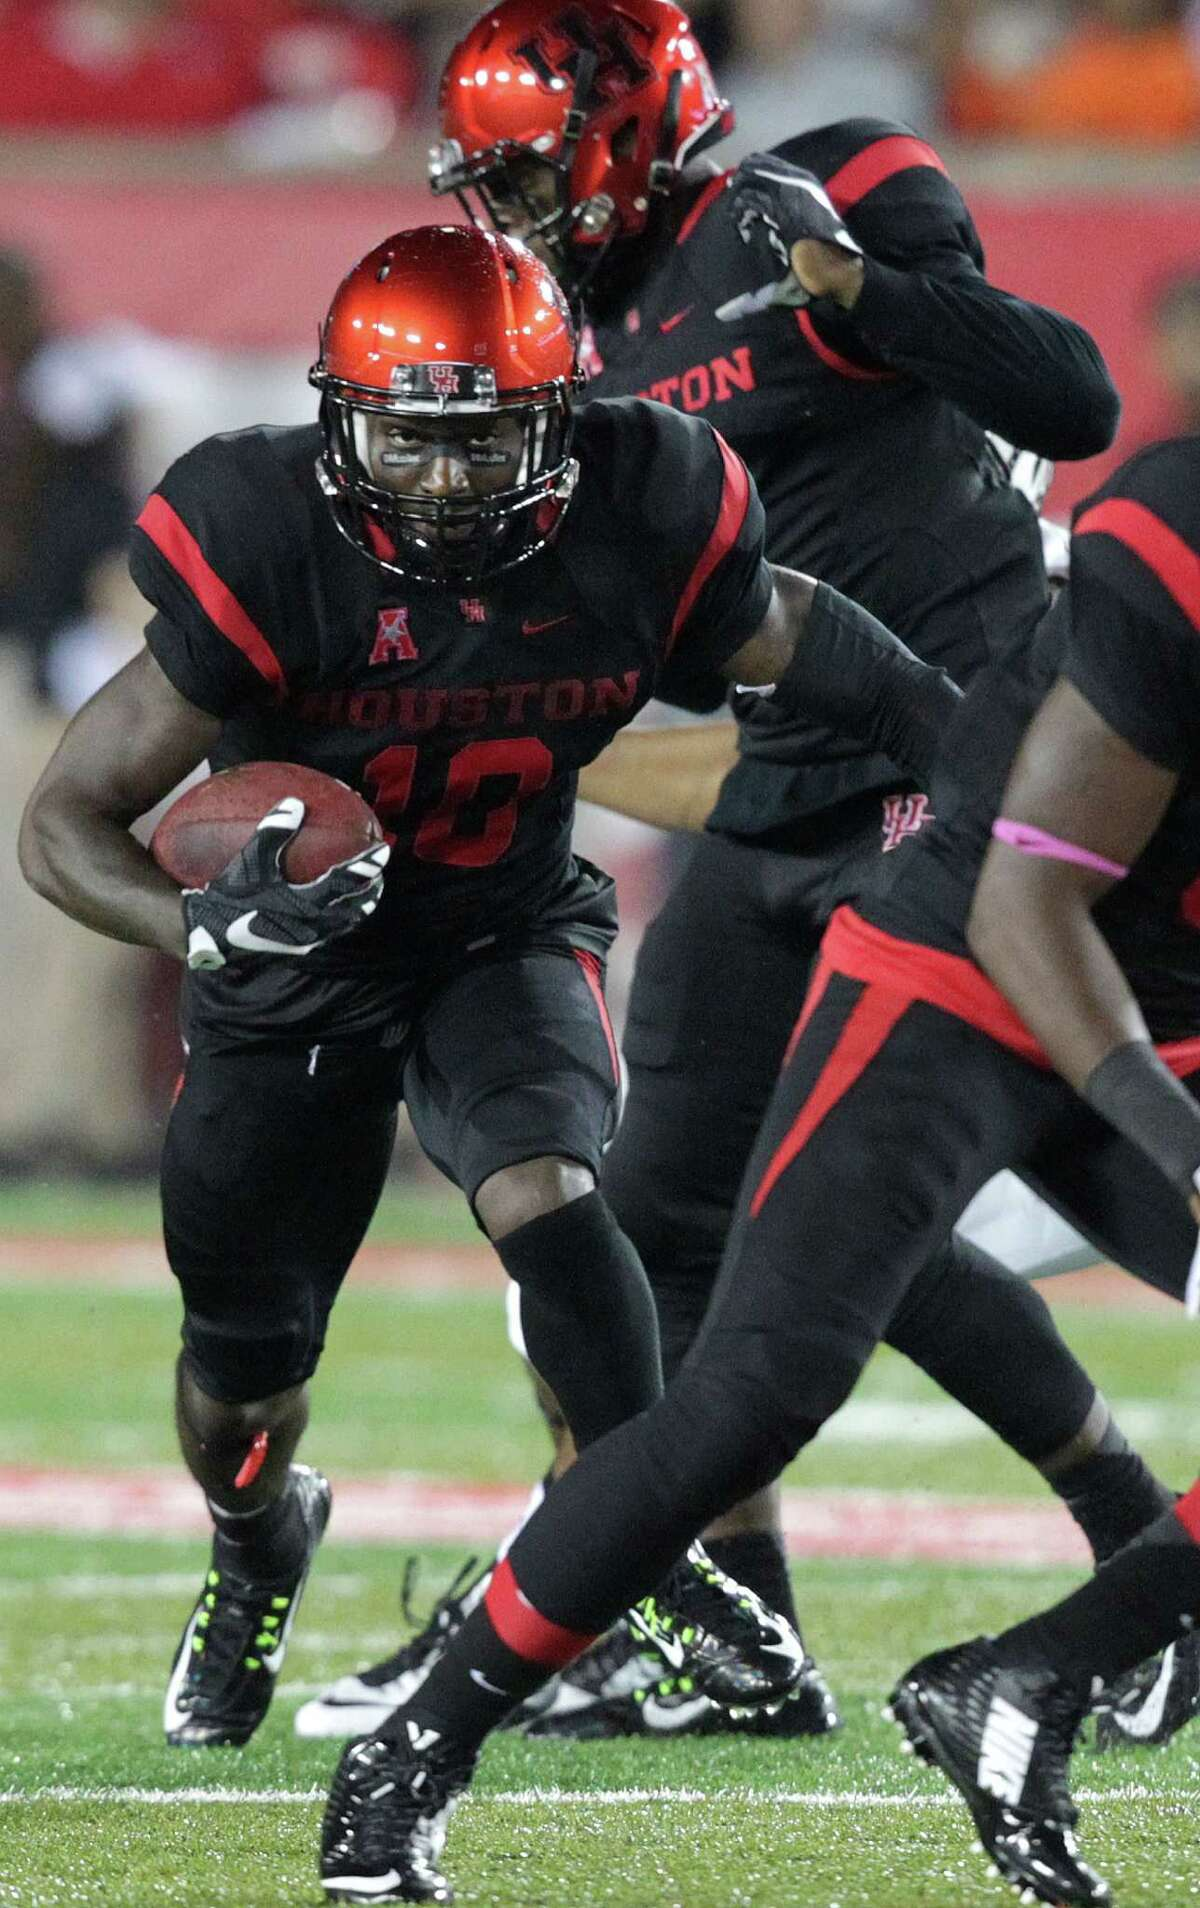 """Wide receiver Demarcus Ayers says UH is pulling together this season after """"just playing off talent"""" in 2014."""